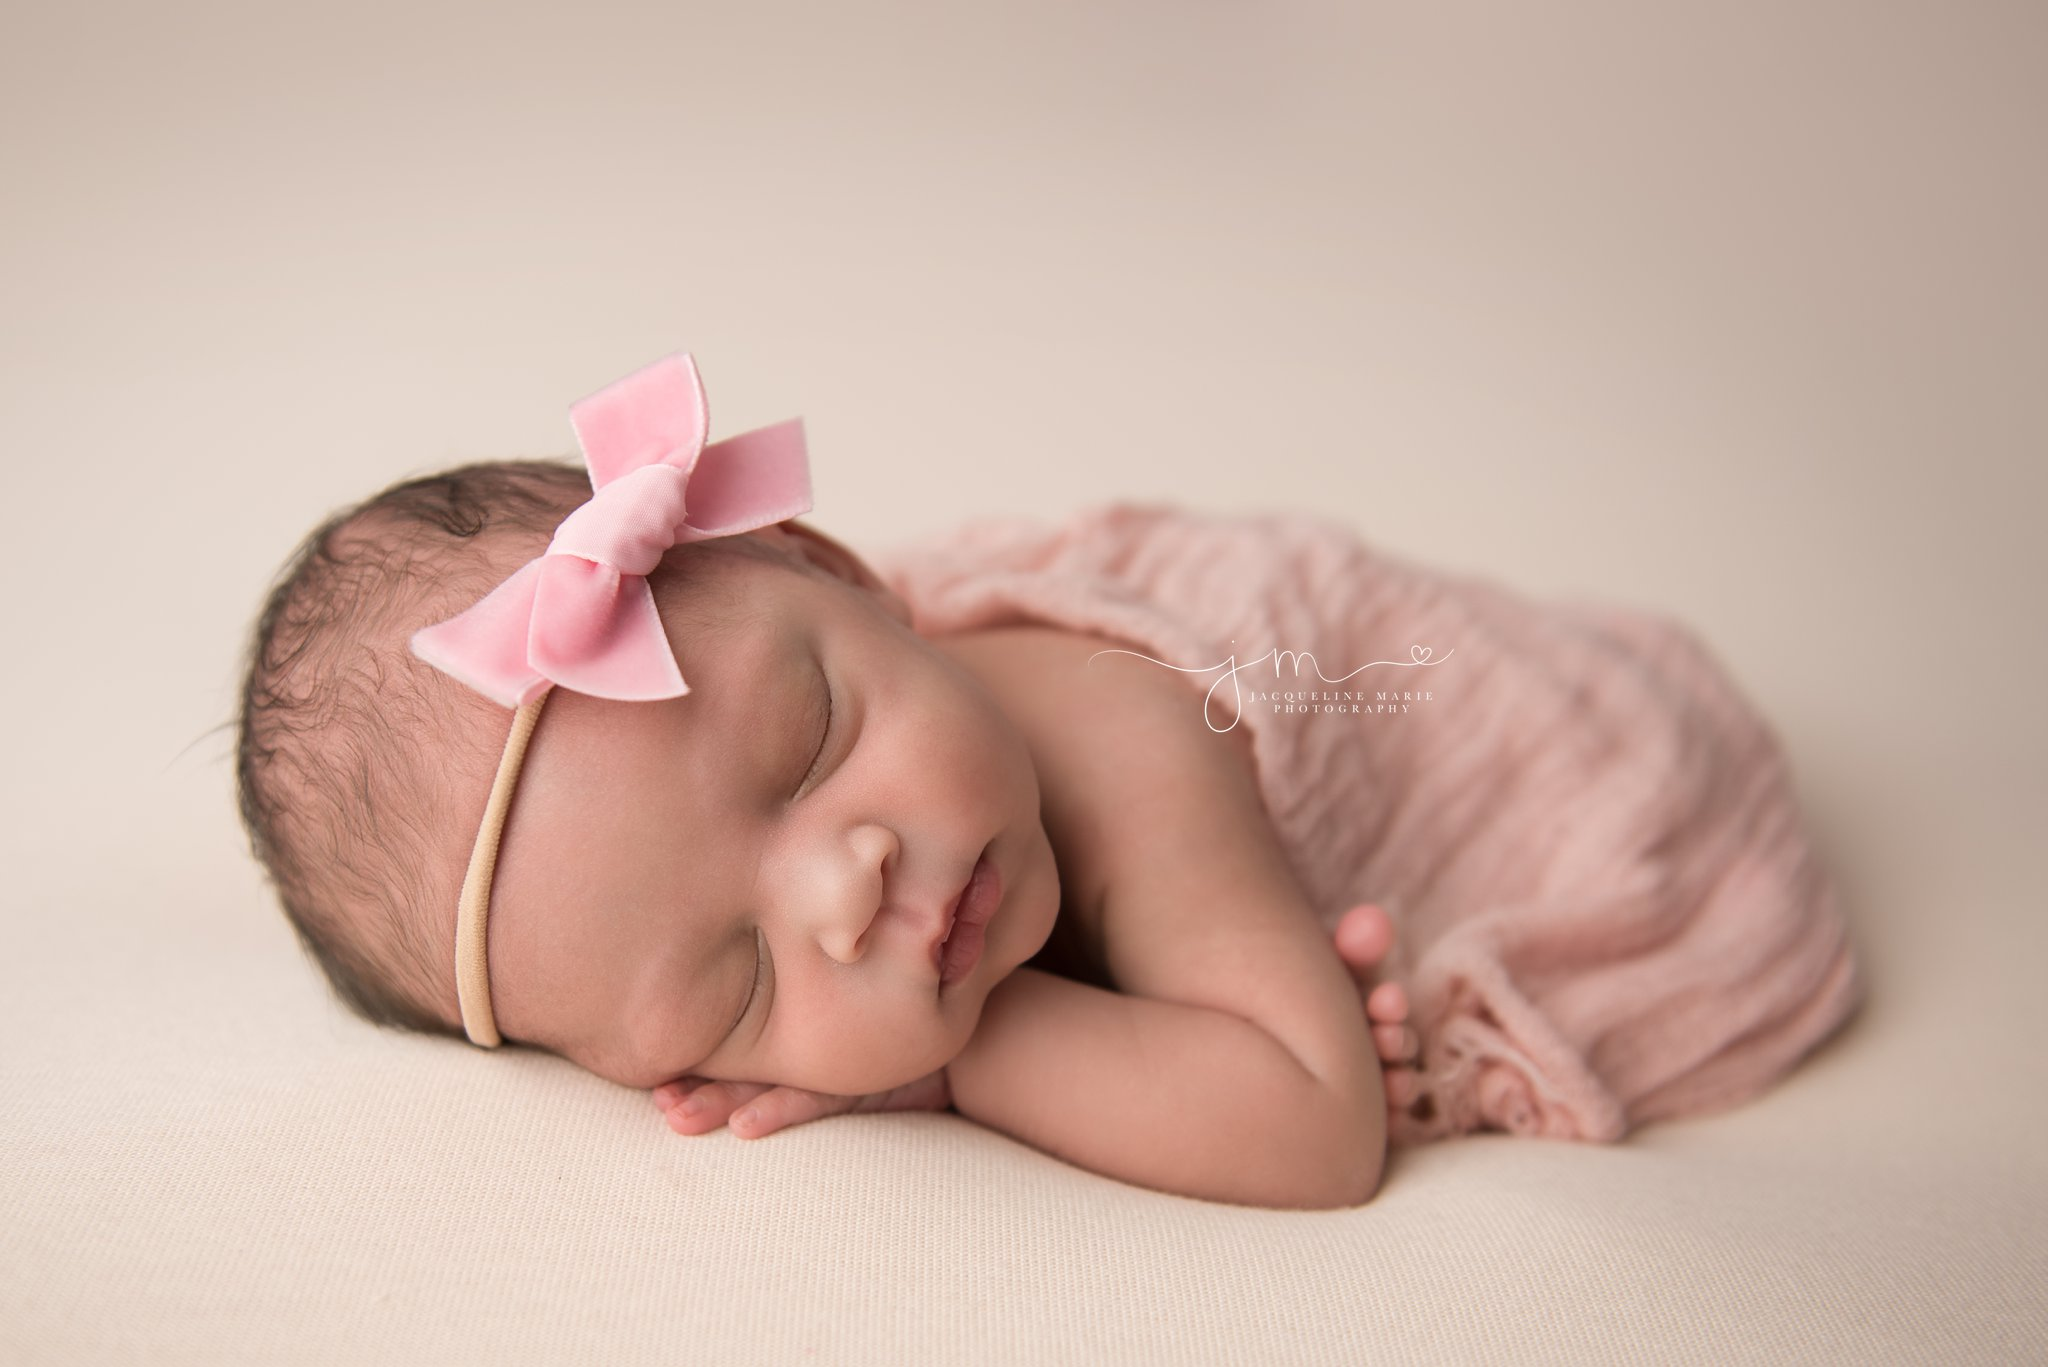 newborn baby girl wears pink bow headband and is wrapped in a matching pink soft wrap at newborn photography studio in columbus ohio